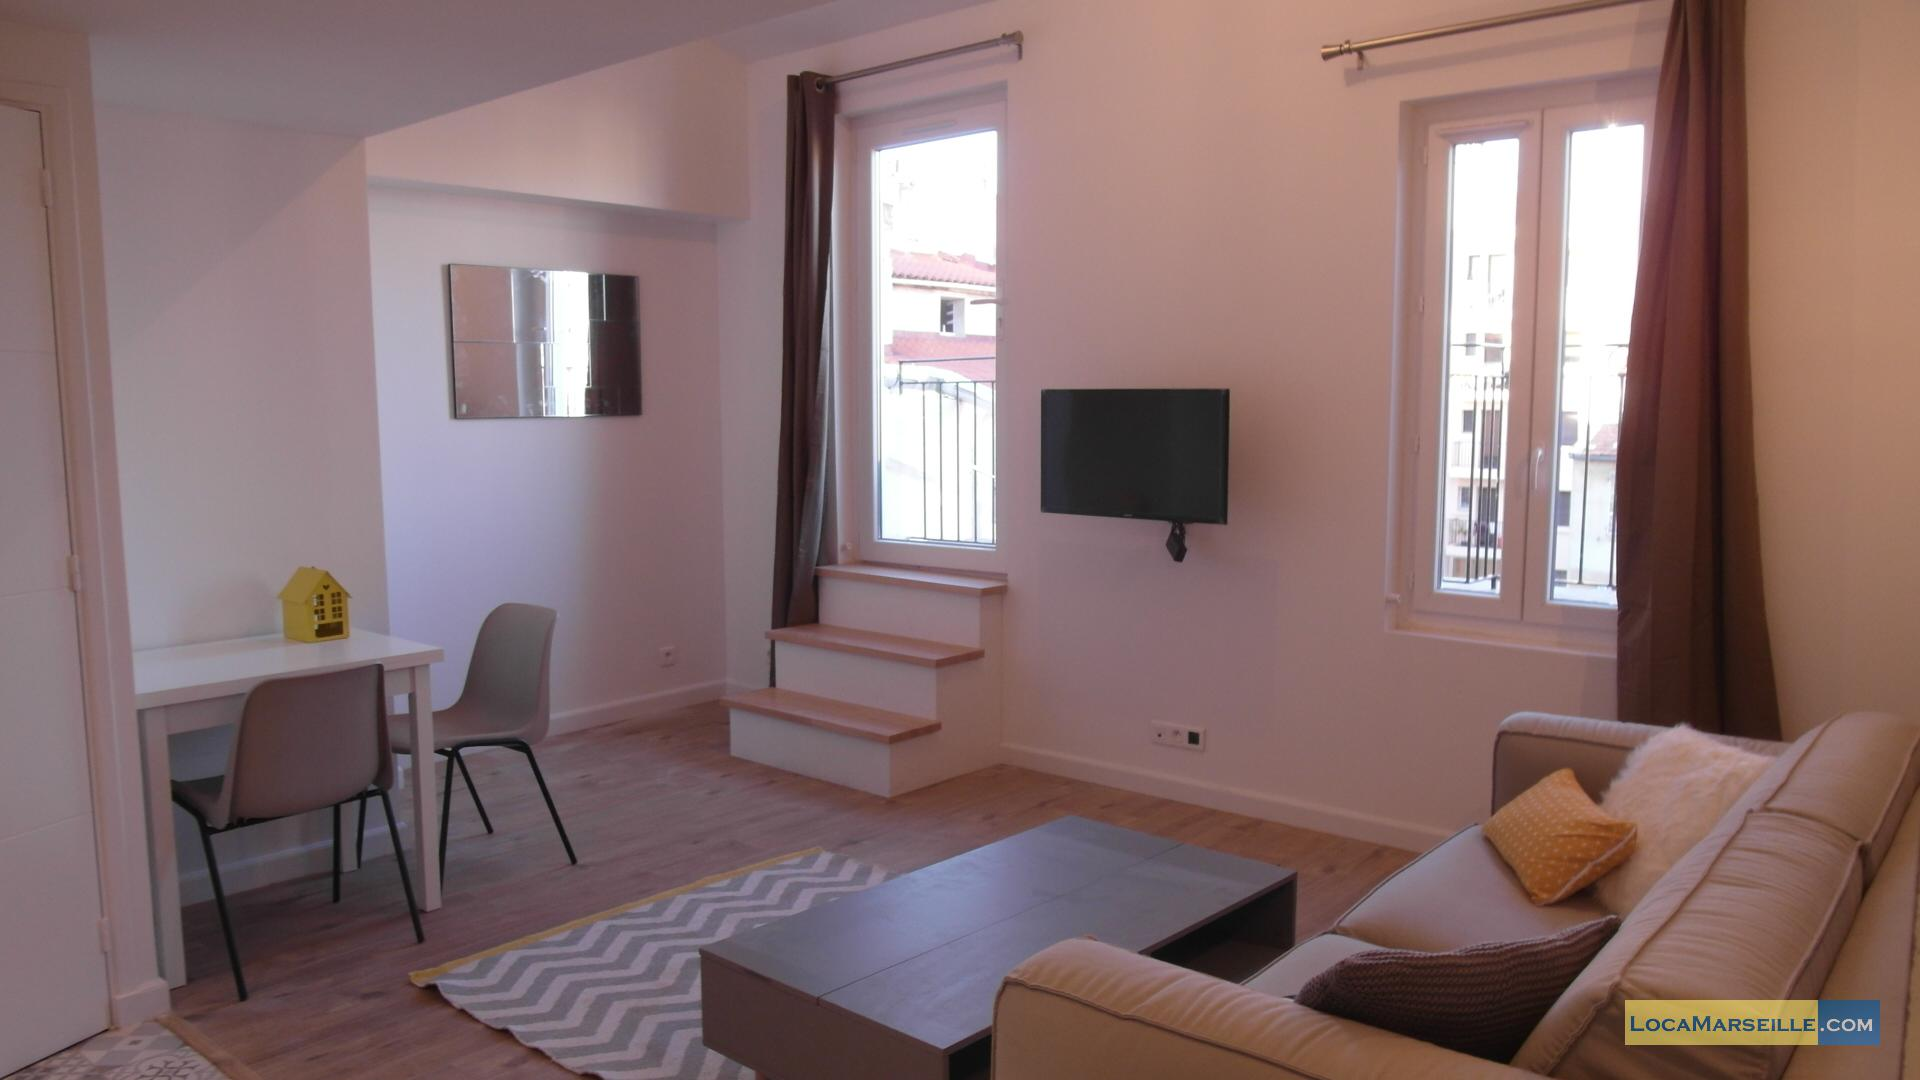 Furnished studio with terrace close to castellane for Furnished room